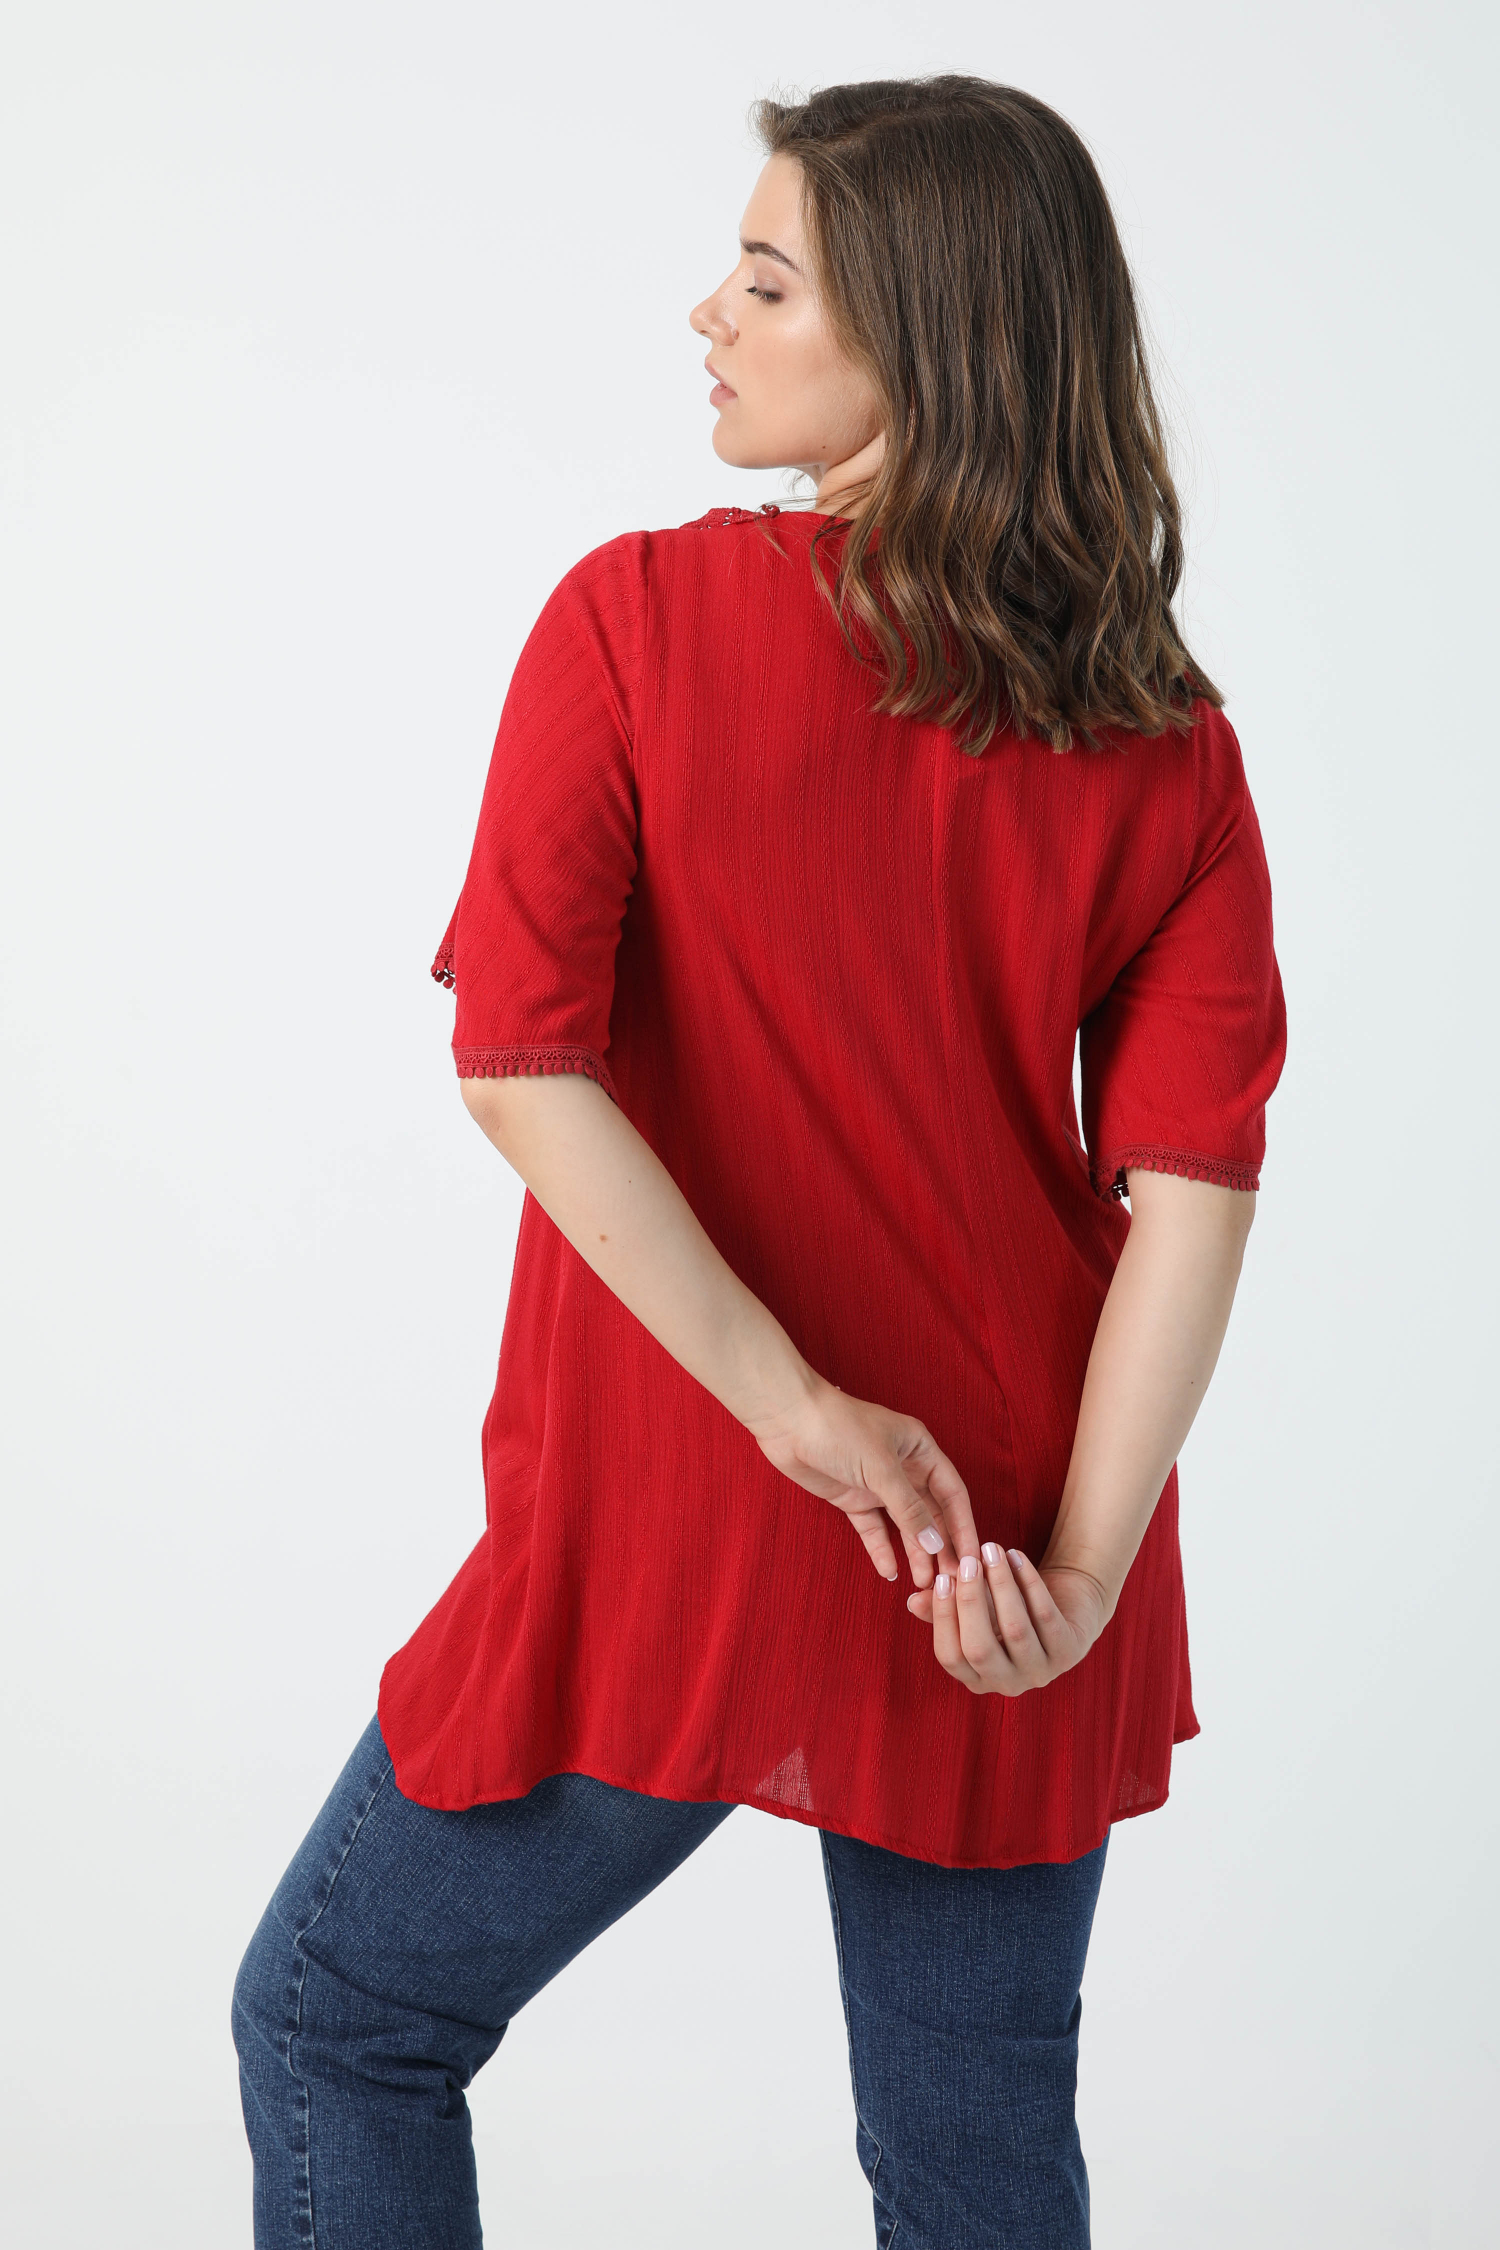 Striped effect crepon tunic with macrame collar (shipping May 10/15)